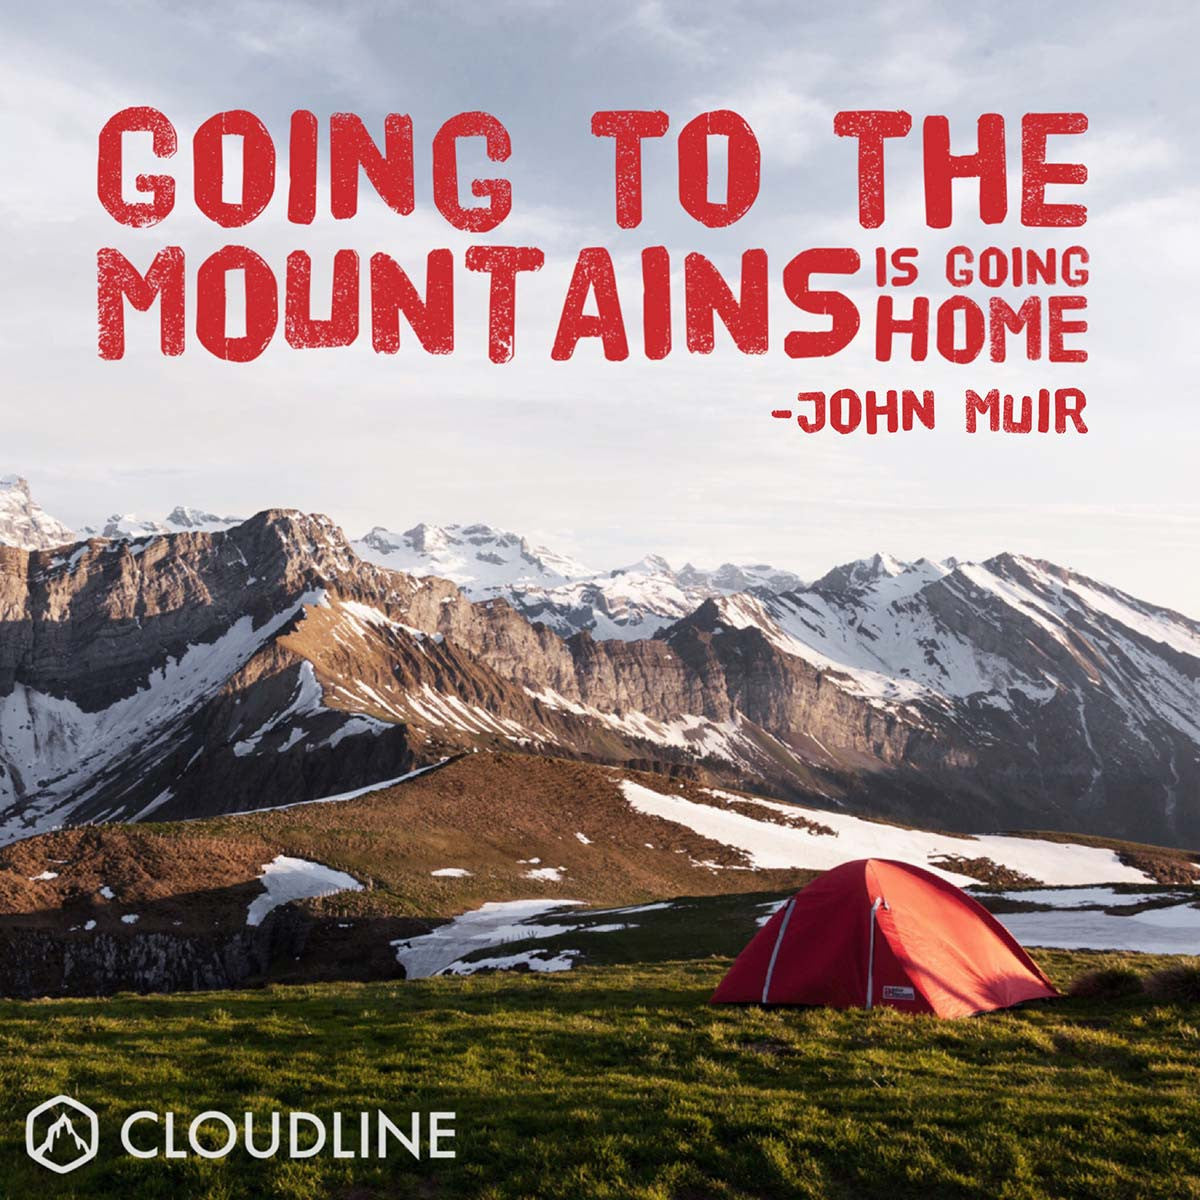 """Going to the mountains is going home."" - John Muir 